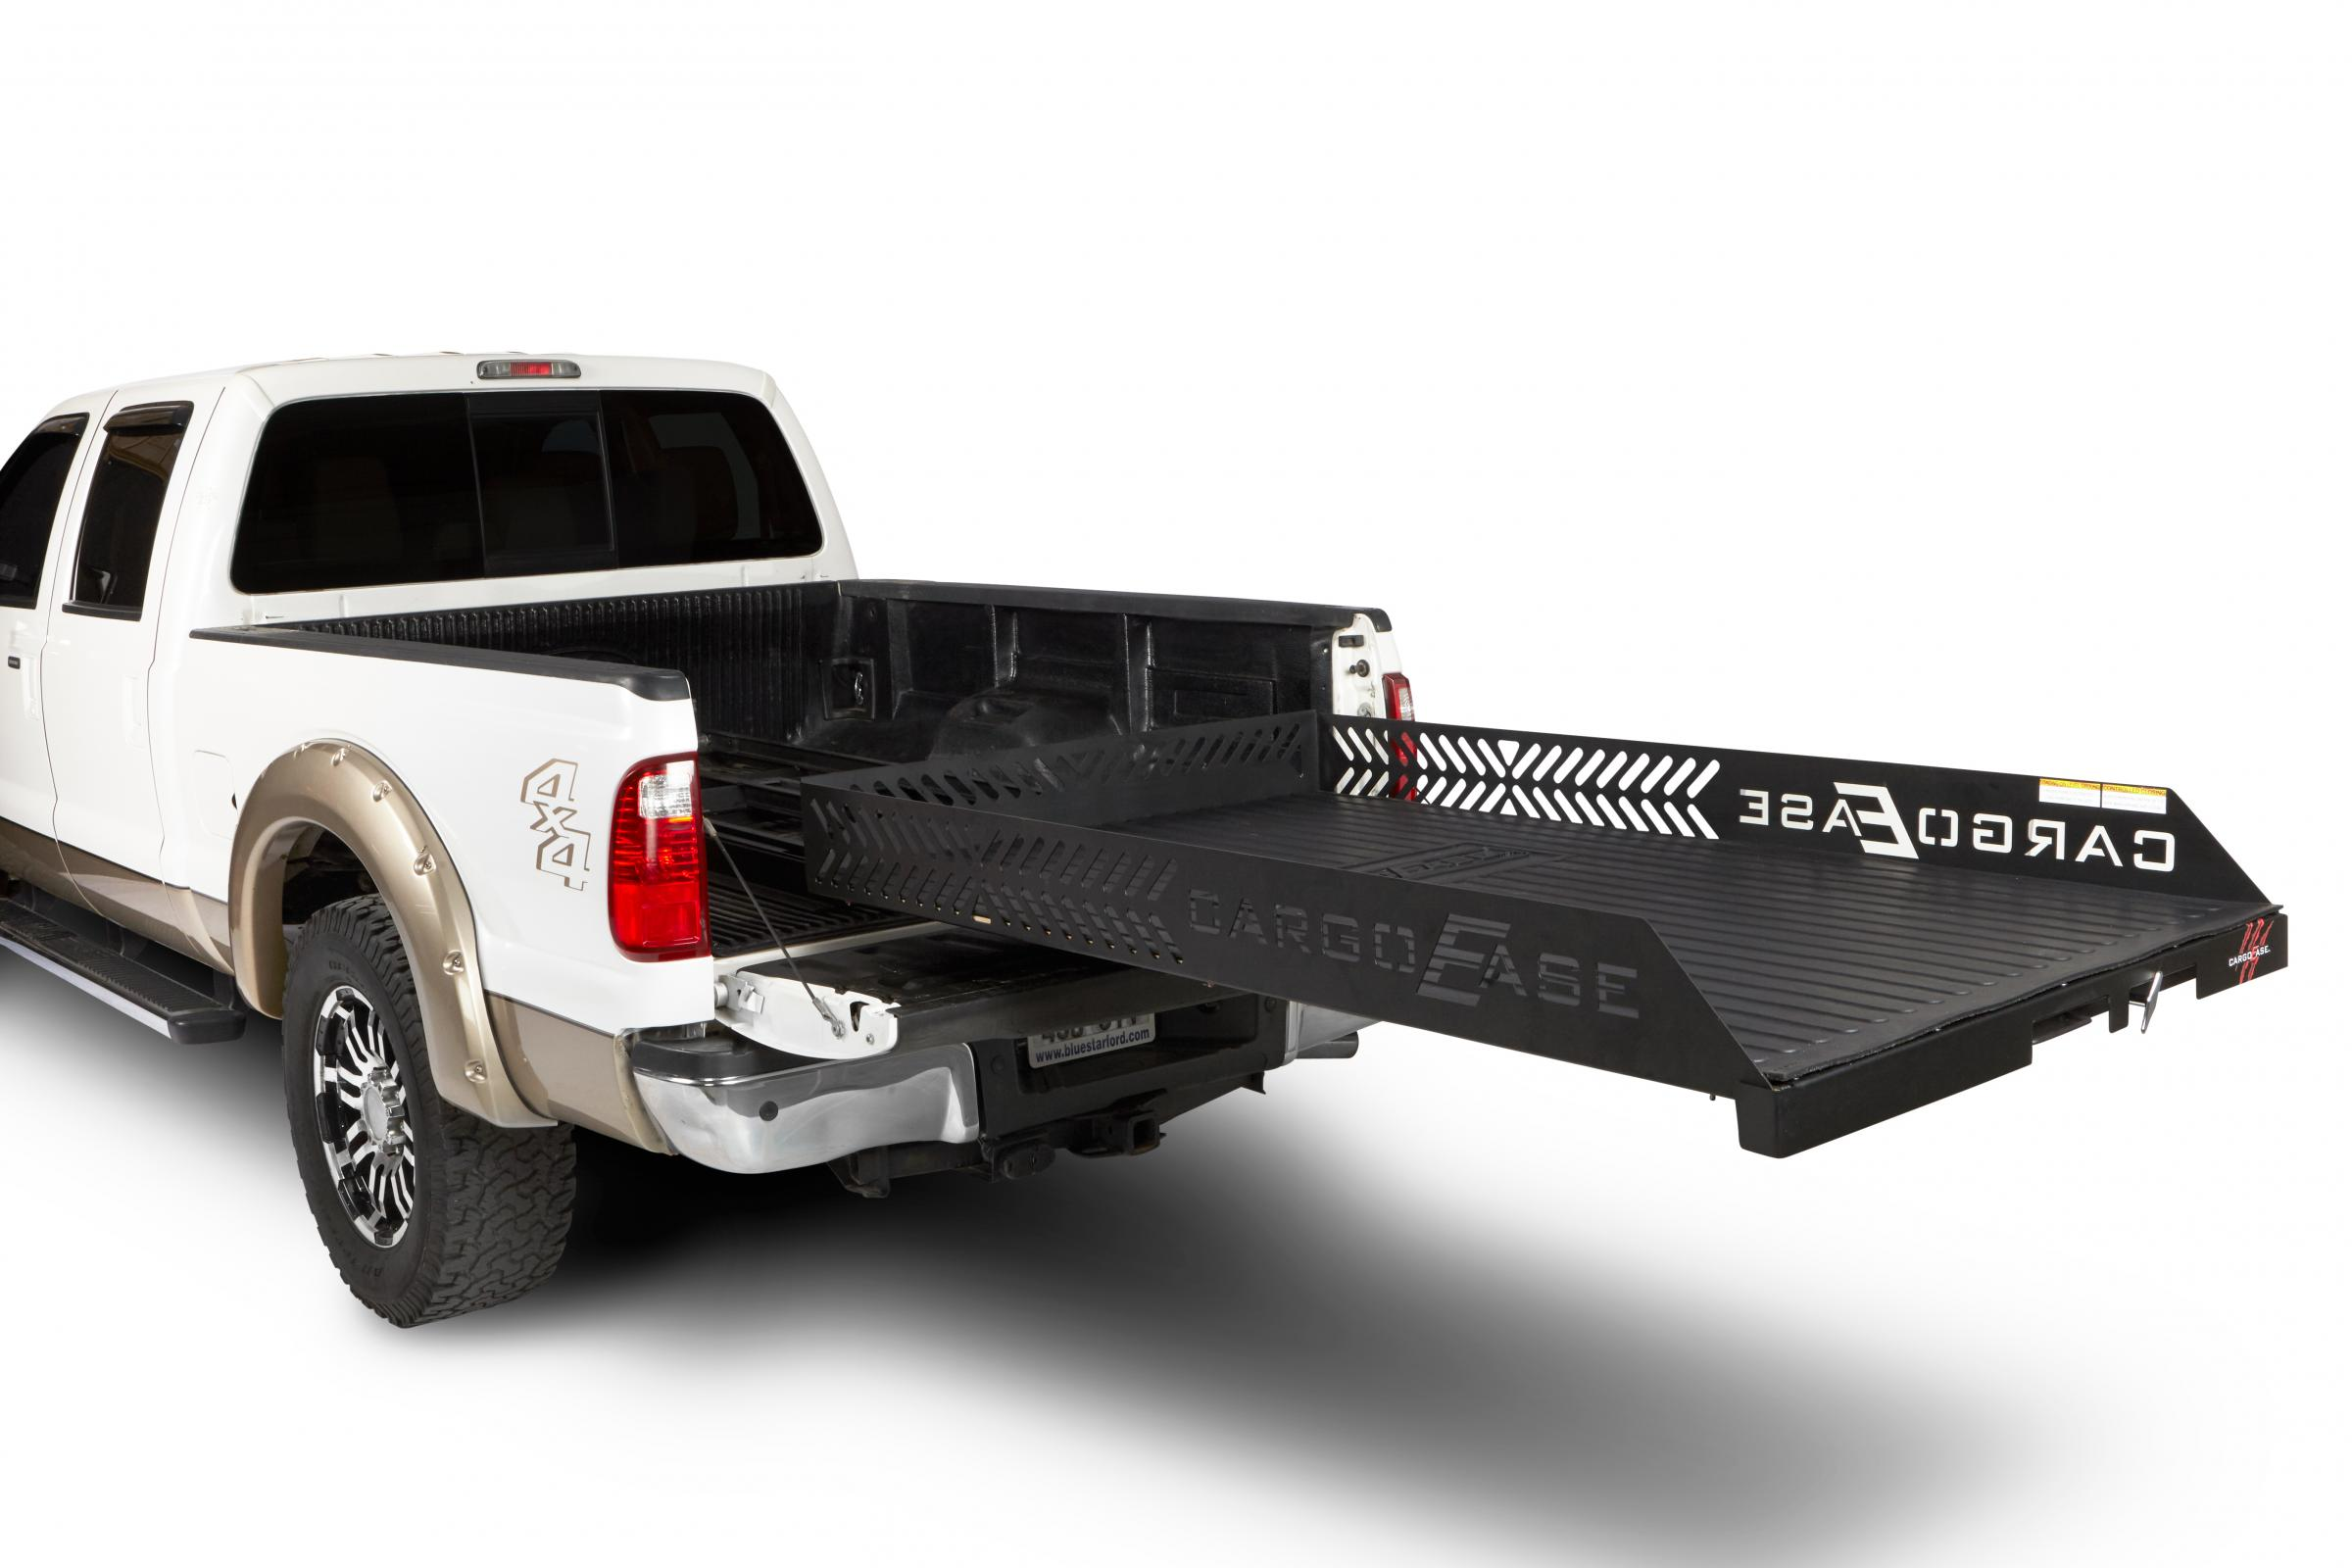 Cargo Ease Full Extension Series Cargo Slide 2000 Lb Capacity 03-Pres Toyota Tacoma Double Cab Short Bed